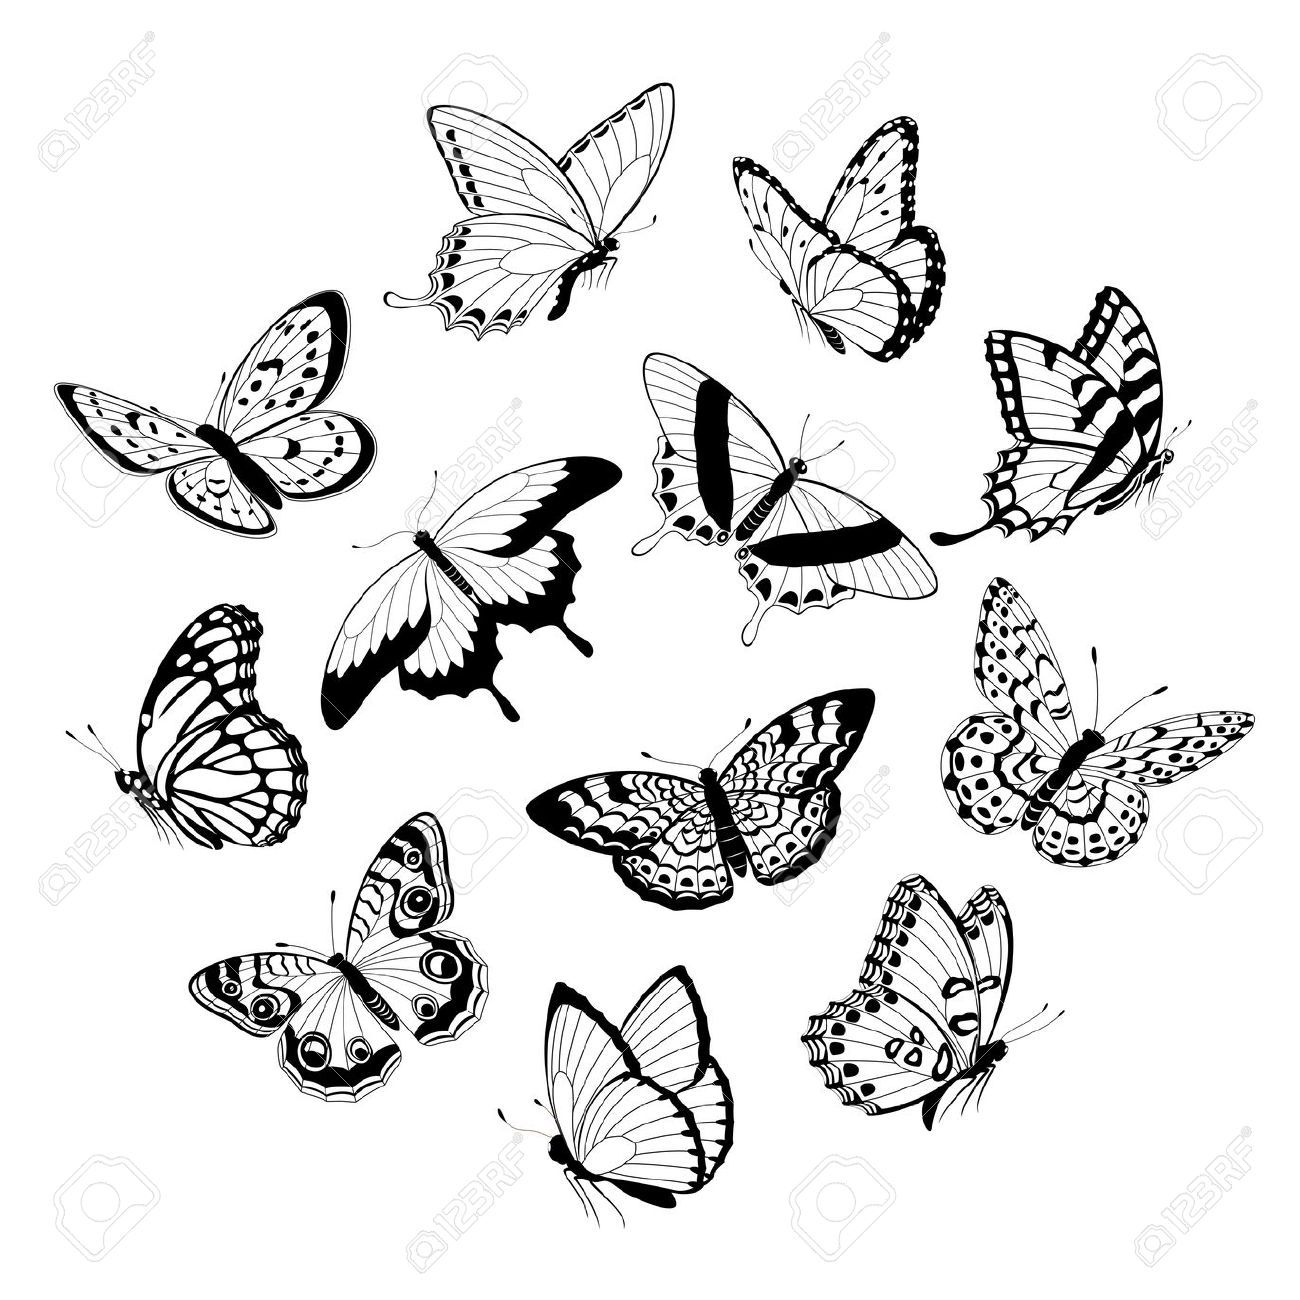 13898872 Set Of Flying Black And White Butterflies Isolated On White Background Stock Vector Jpg 1 White Butterfly Tattoo Butterfly Drawing Butterfly Outline